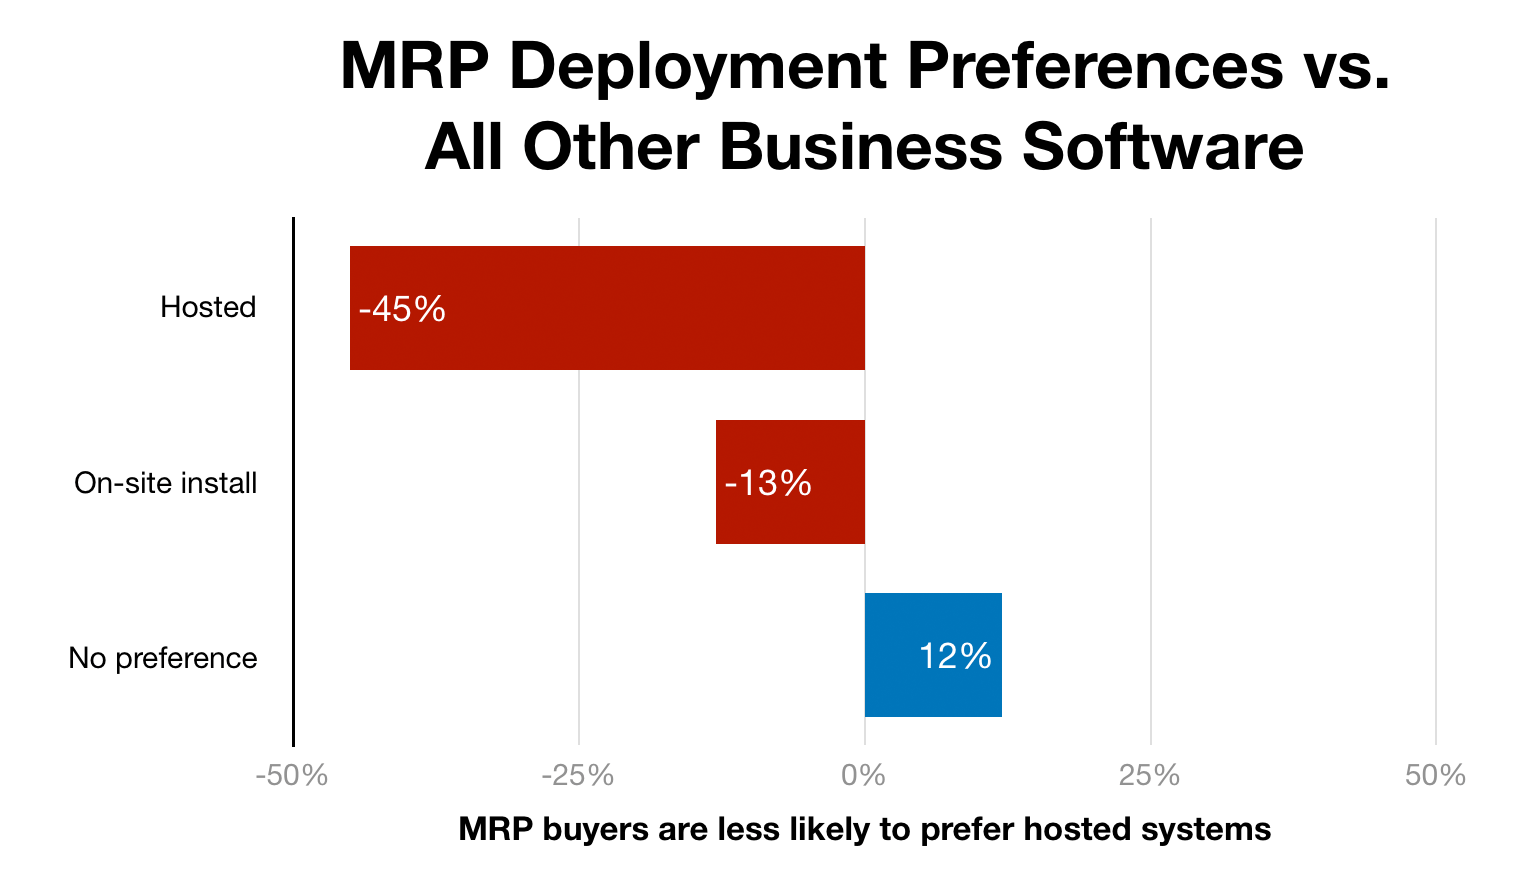 Chart of MRP deployment preferences compared to baseline